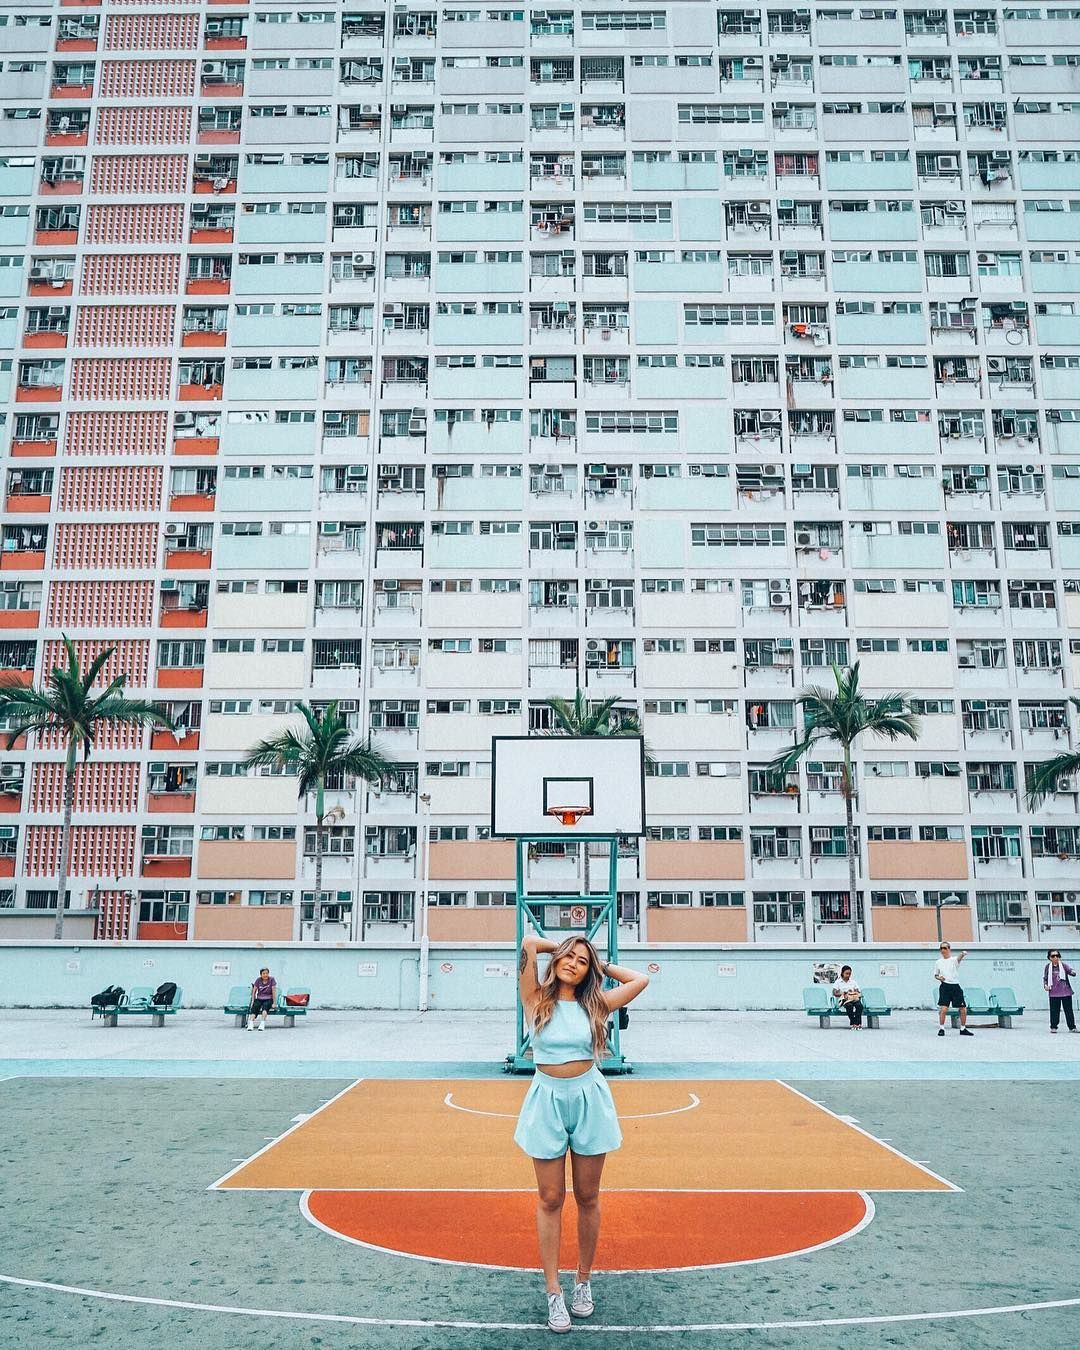 Rainbow Estates, Choi Hung Estates. Hong Kong | Travel & Style ...